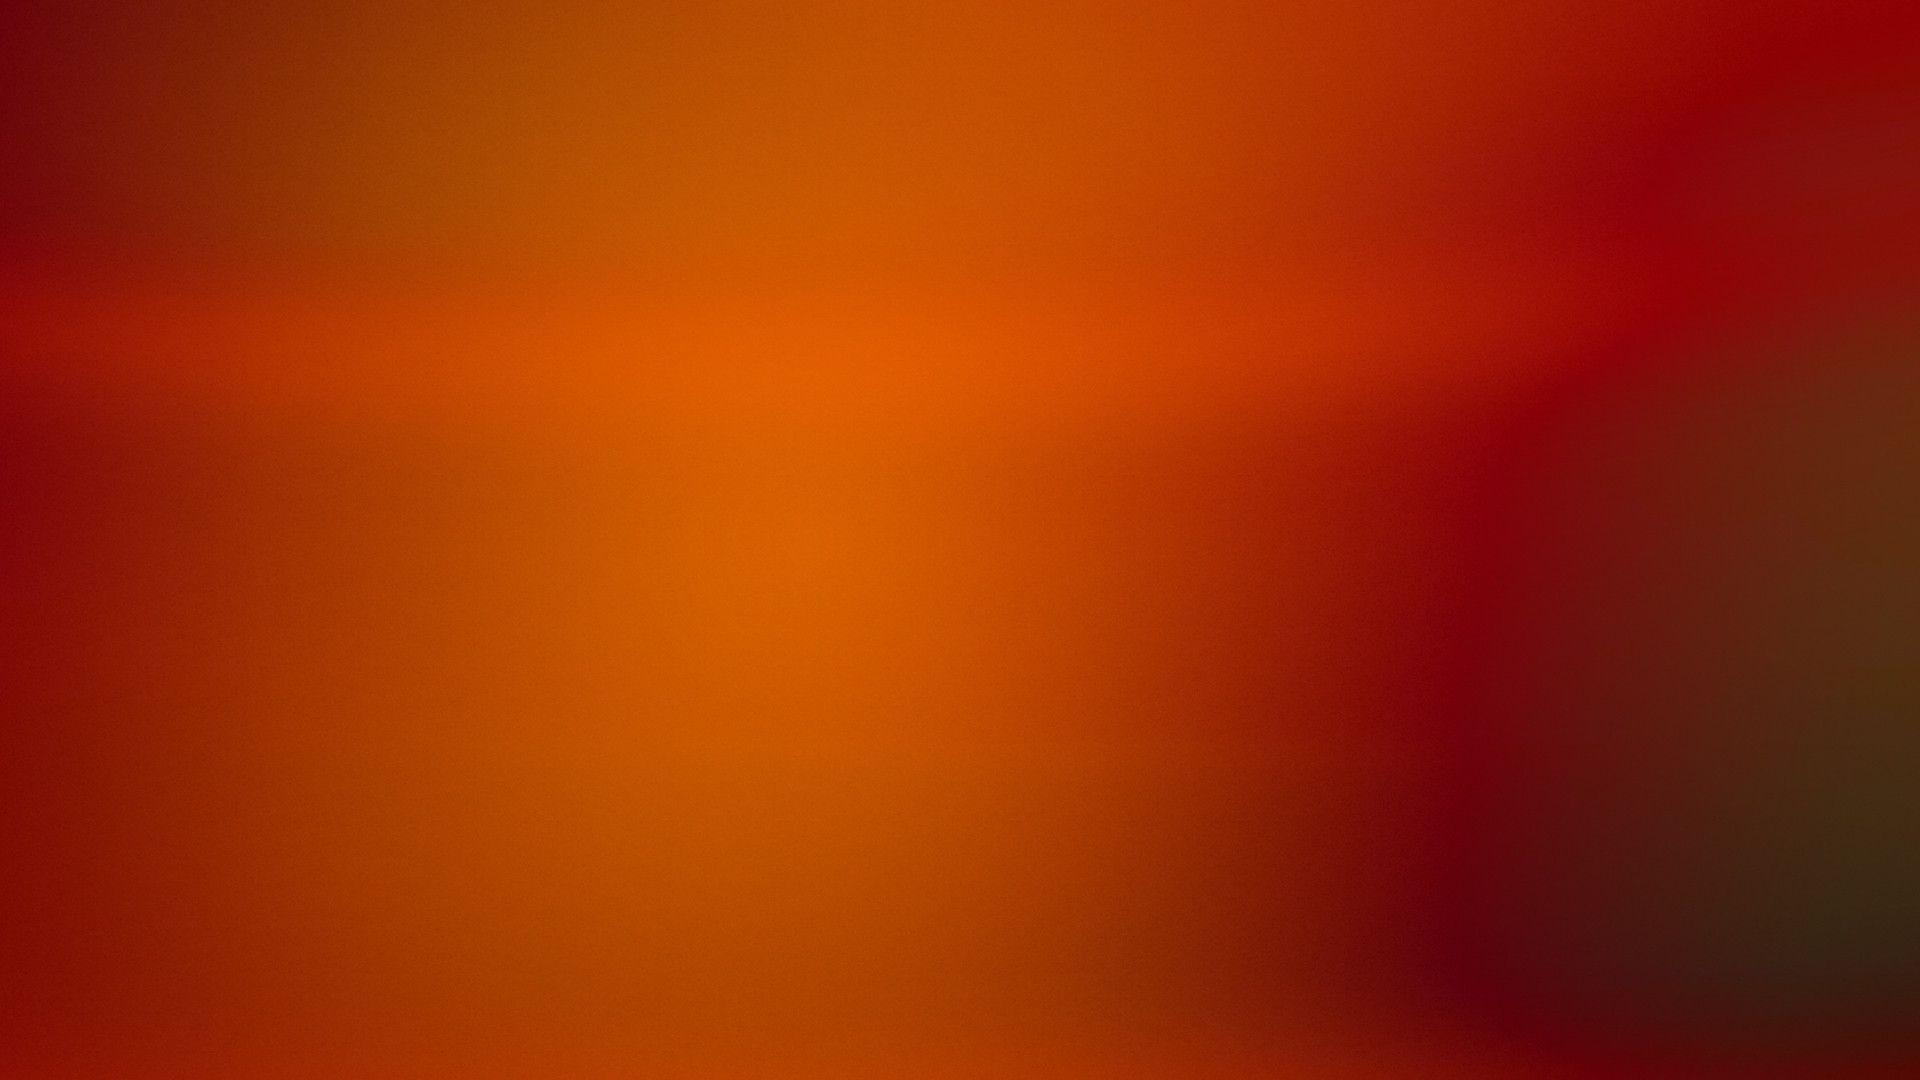 Wallpapers For Backgrounds - Wallpaper Cave